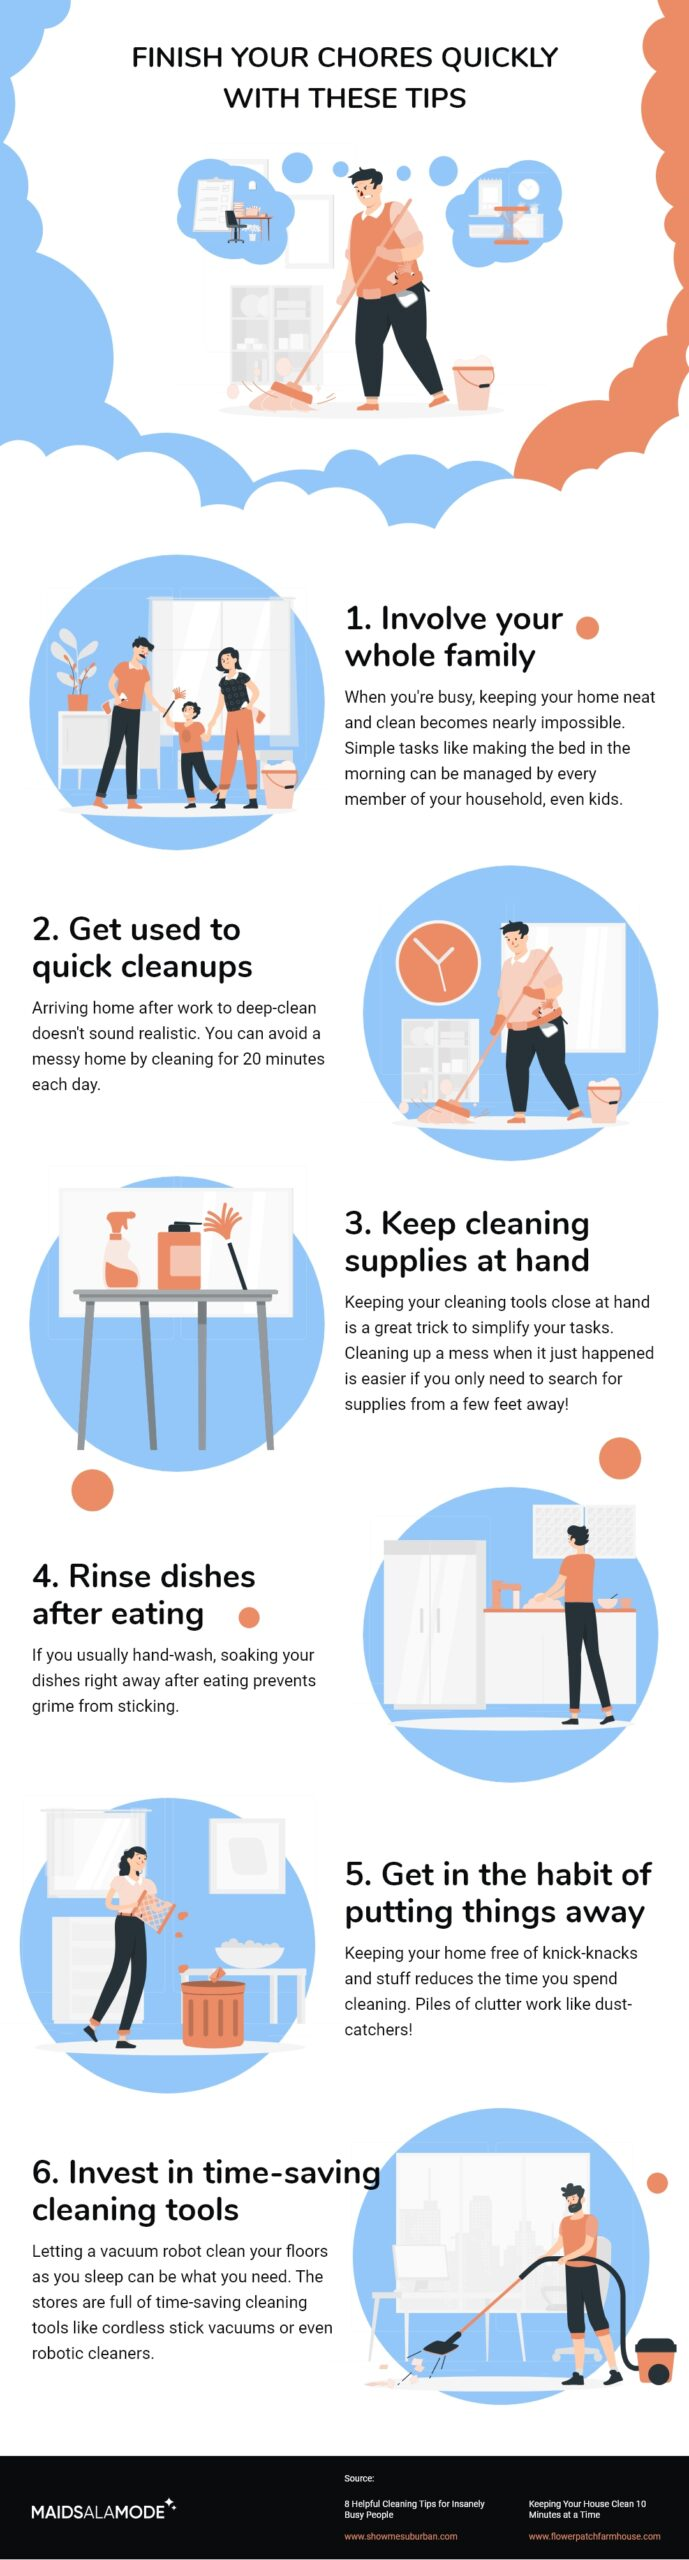 Tips to finish chores quickly infographics